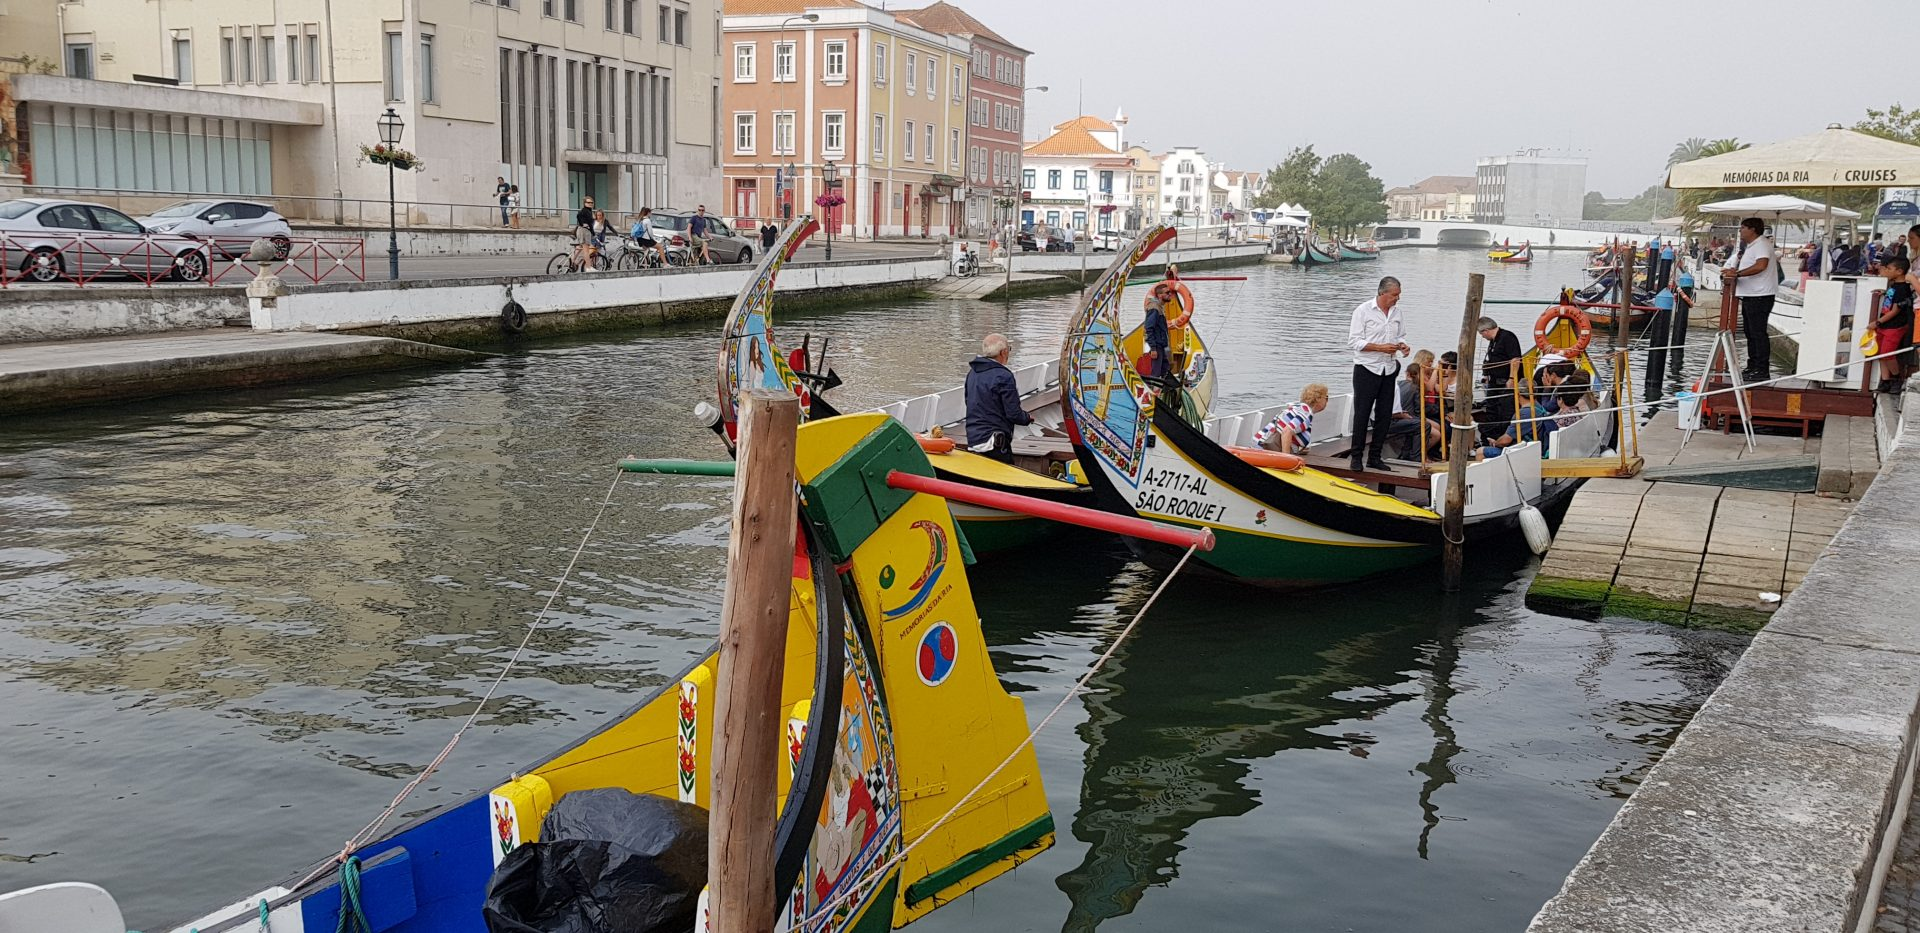 VIDEO: AVEIRO (PORTUGAL)